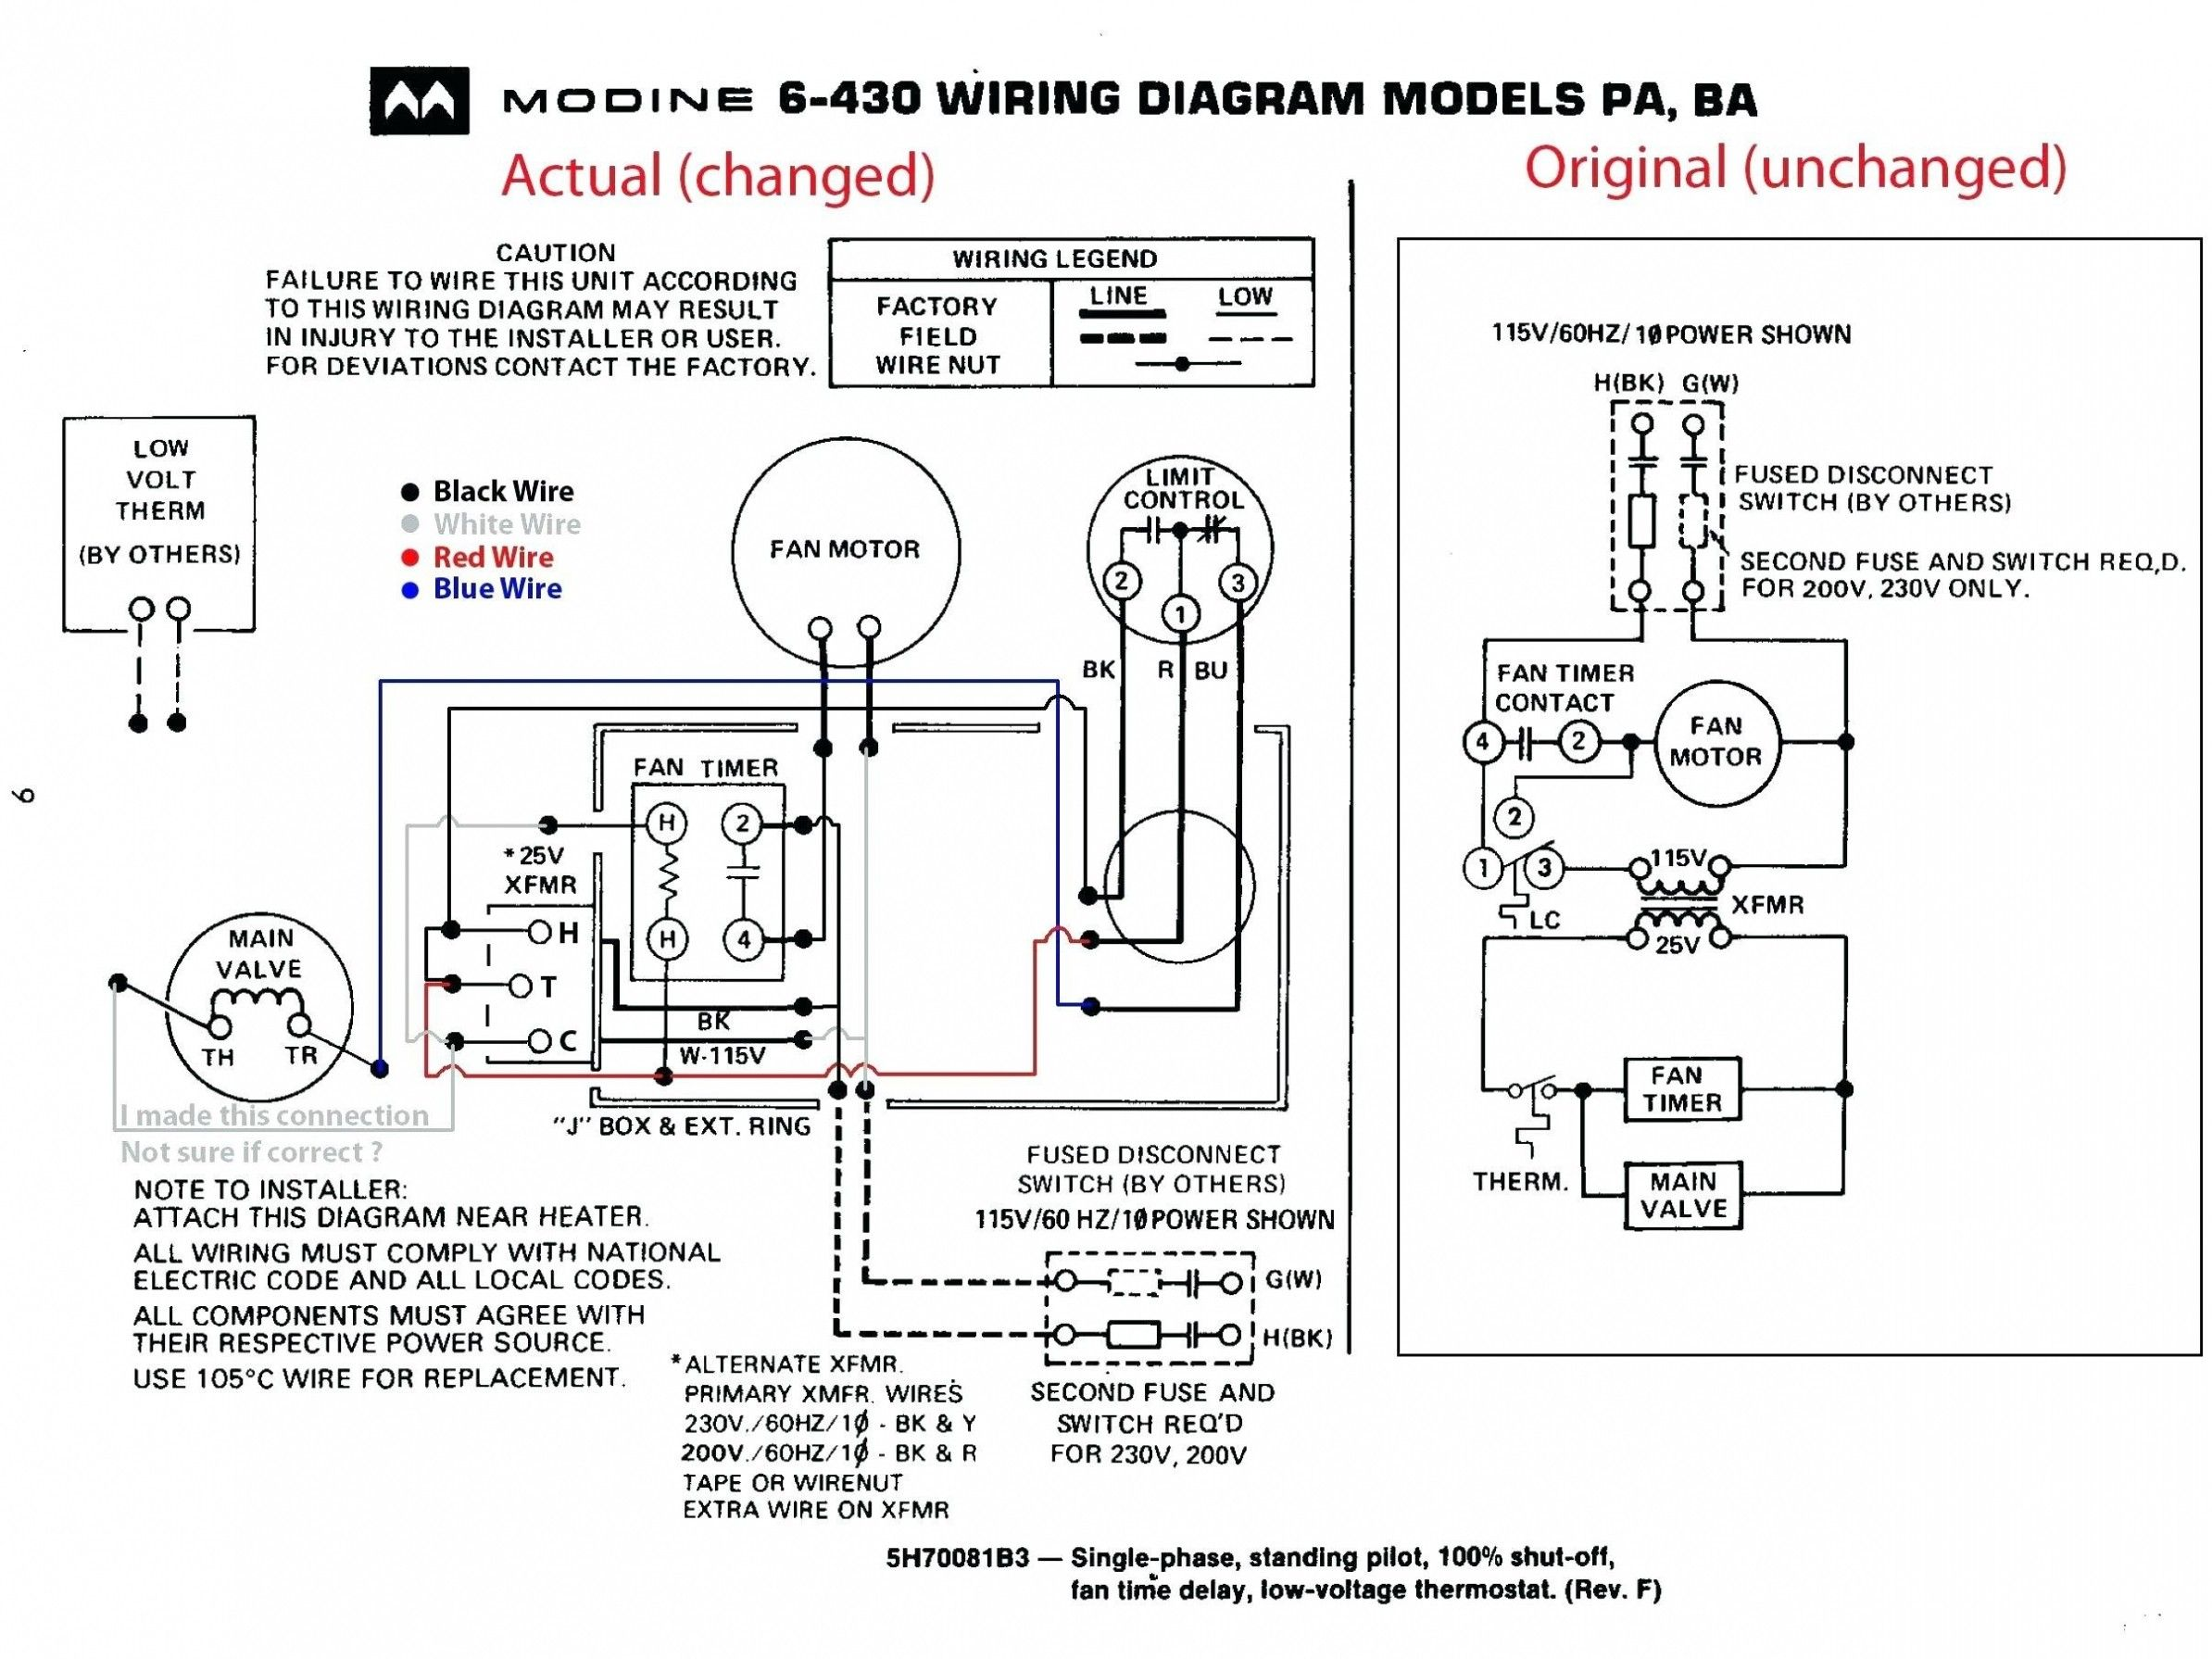 Unique Wiring Diagram For 220 Volt Baseboard Heater Diagram Diagramtemplate Diagramsample